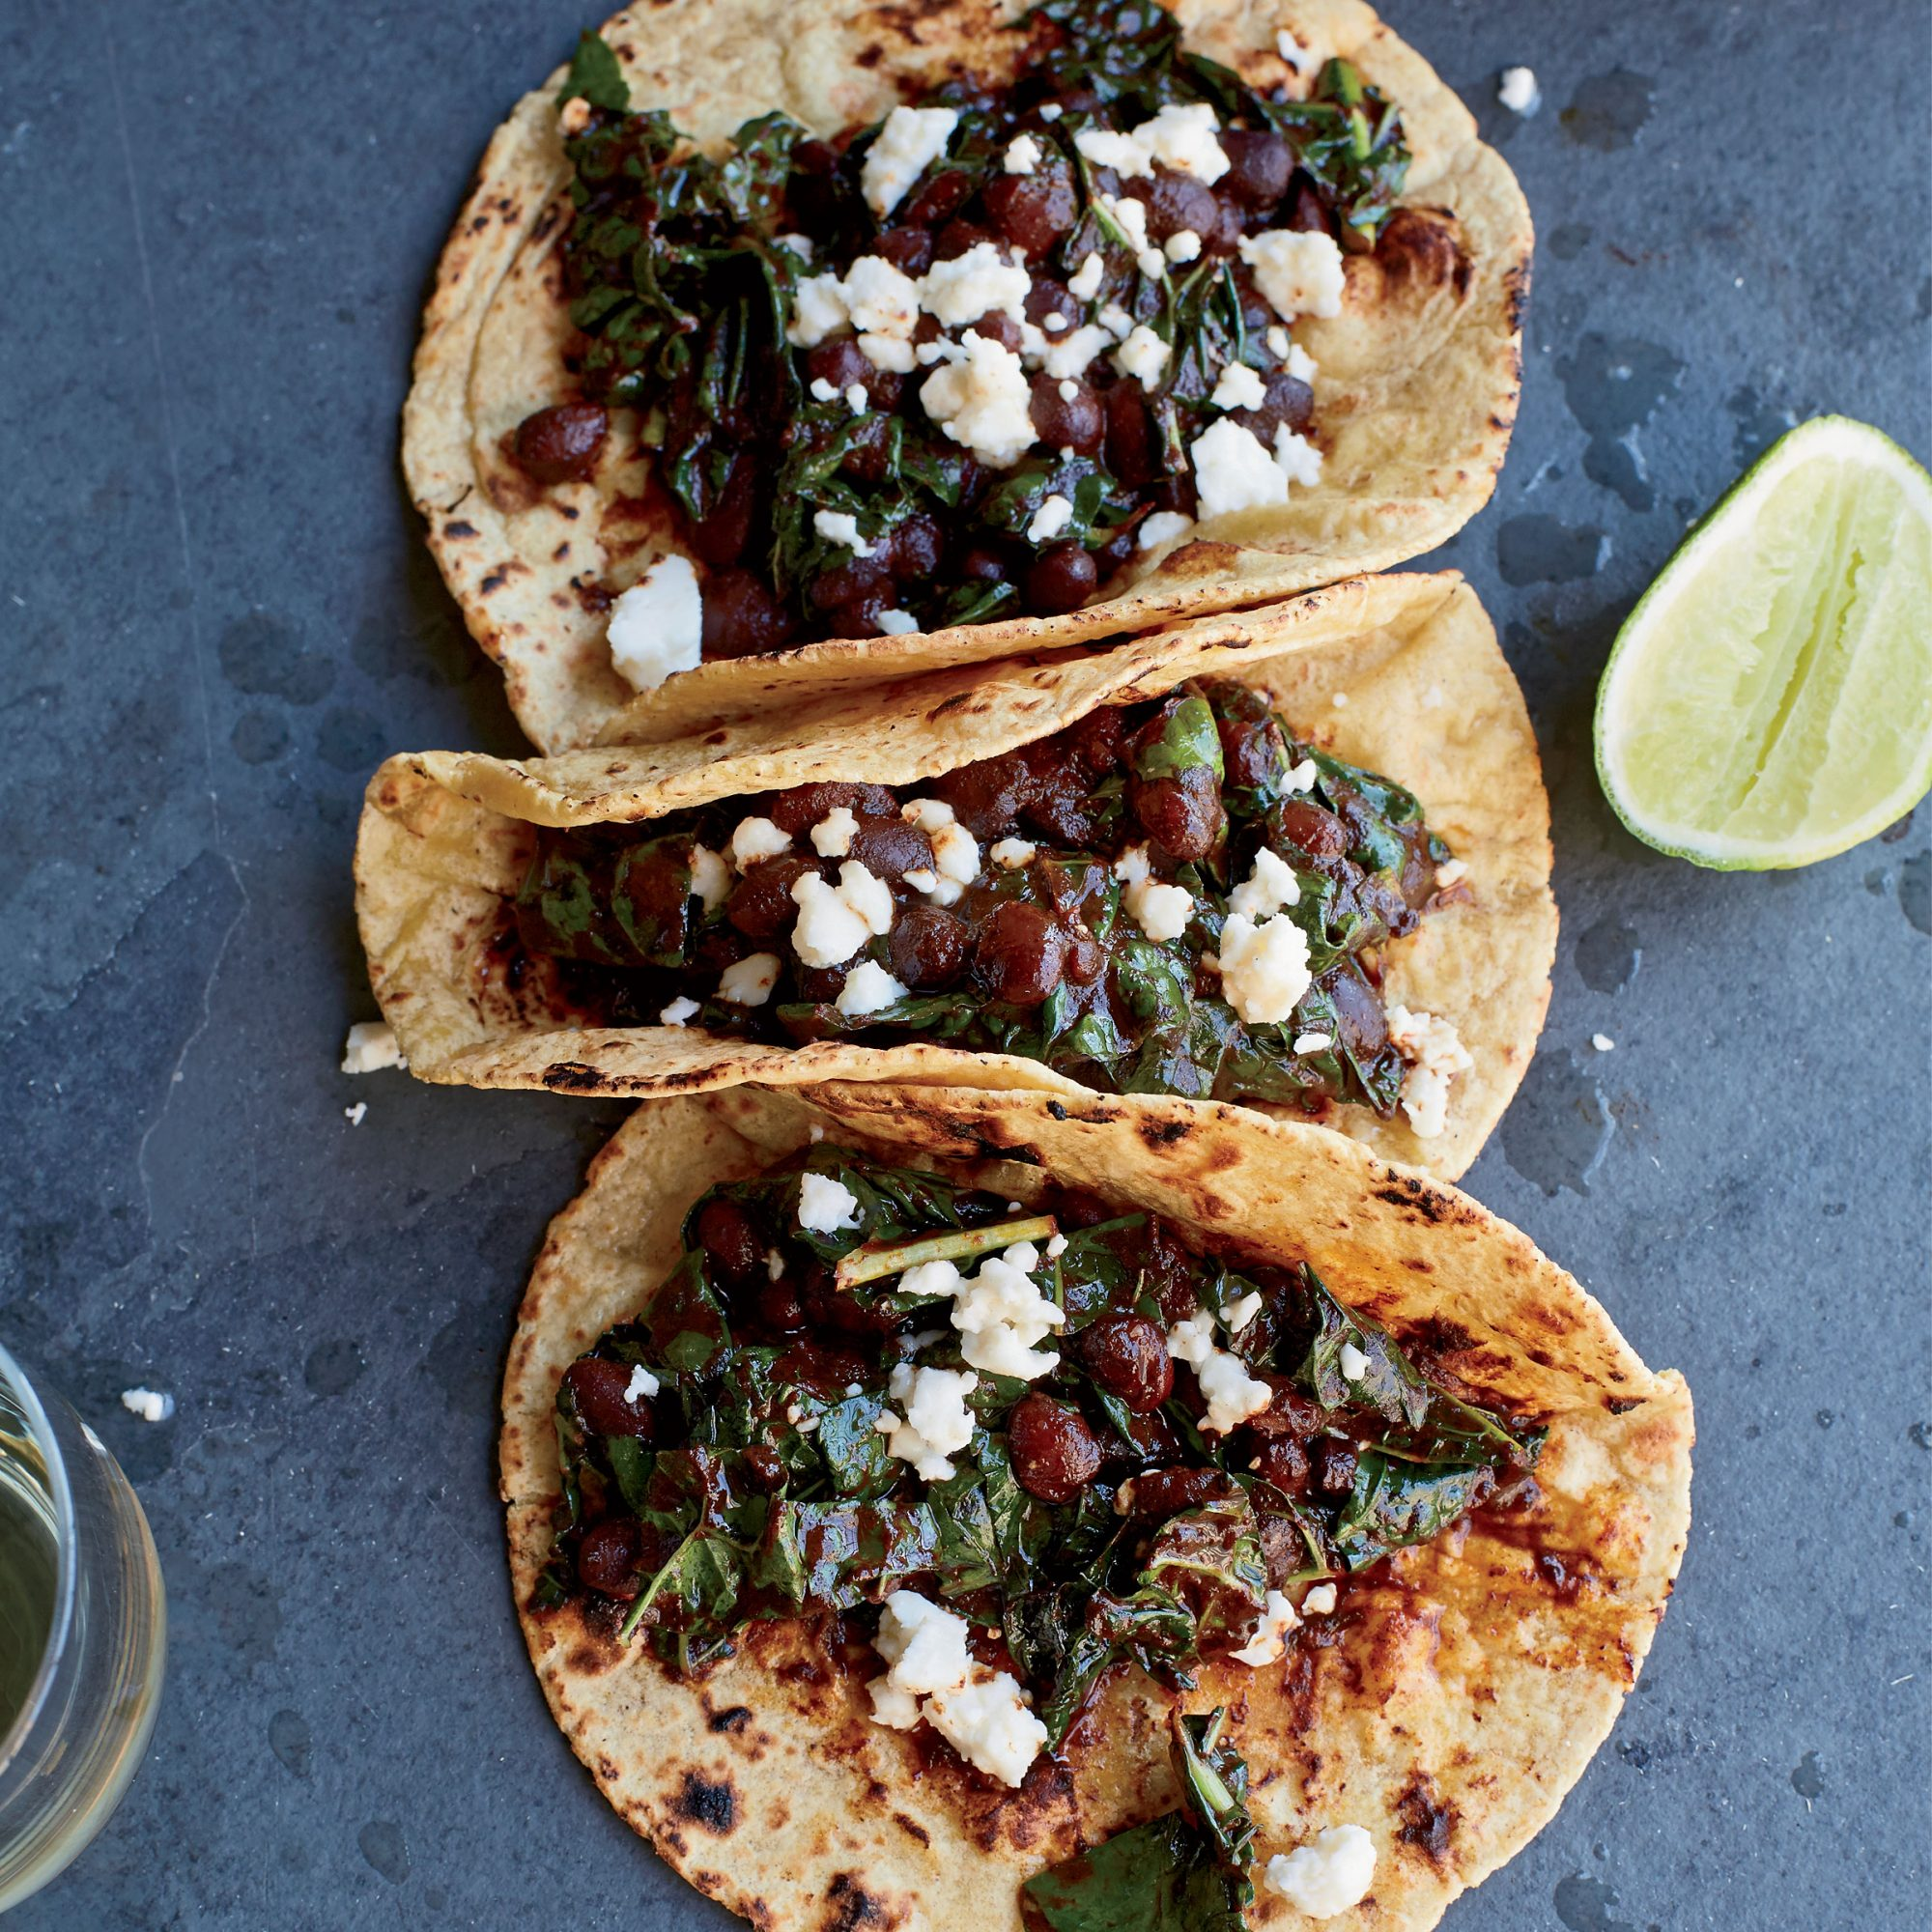 Kale Black Bean and Red Chile Tacos with Queso Fresco